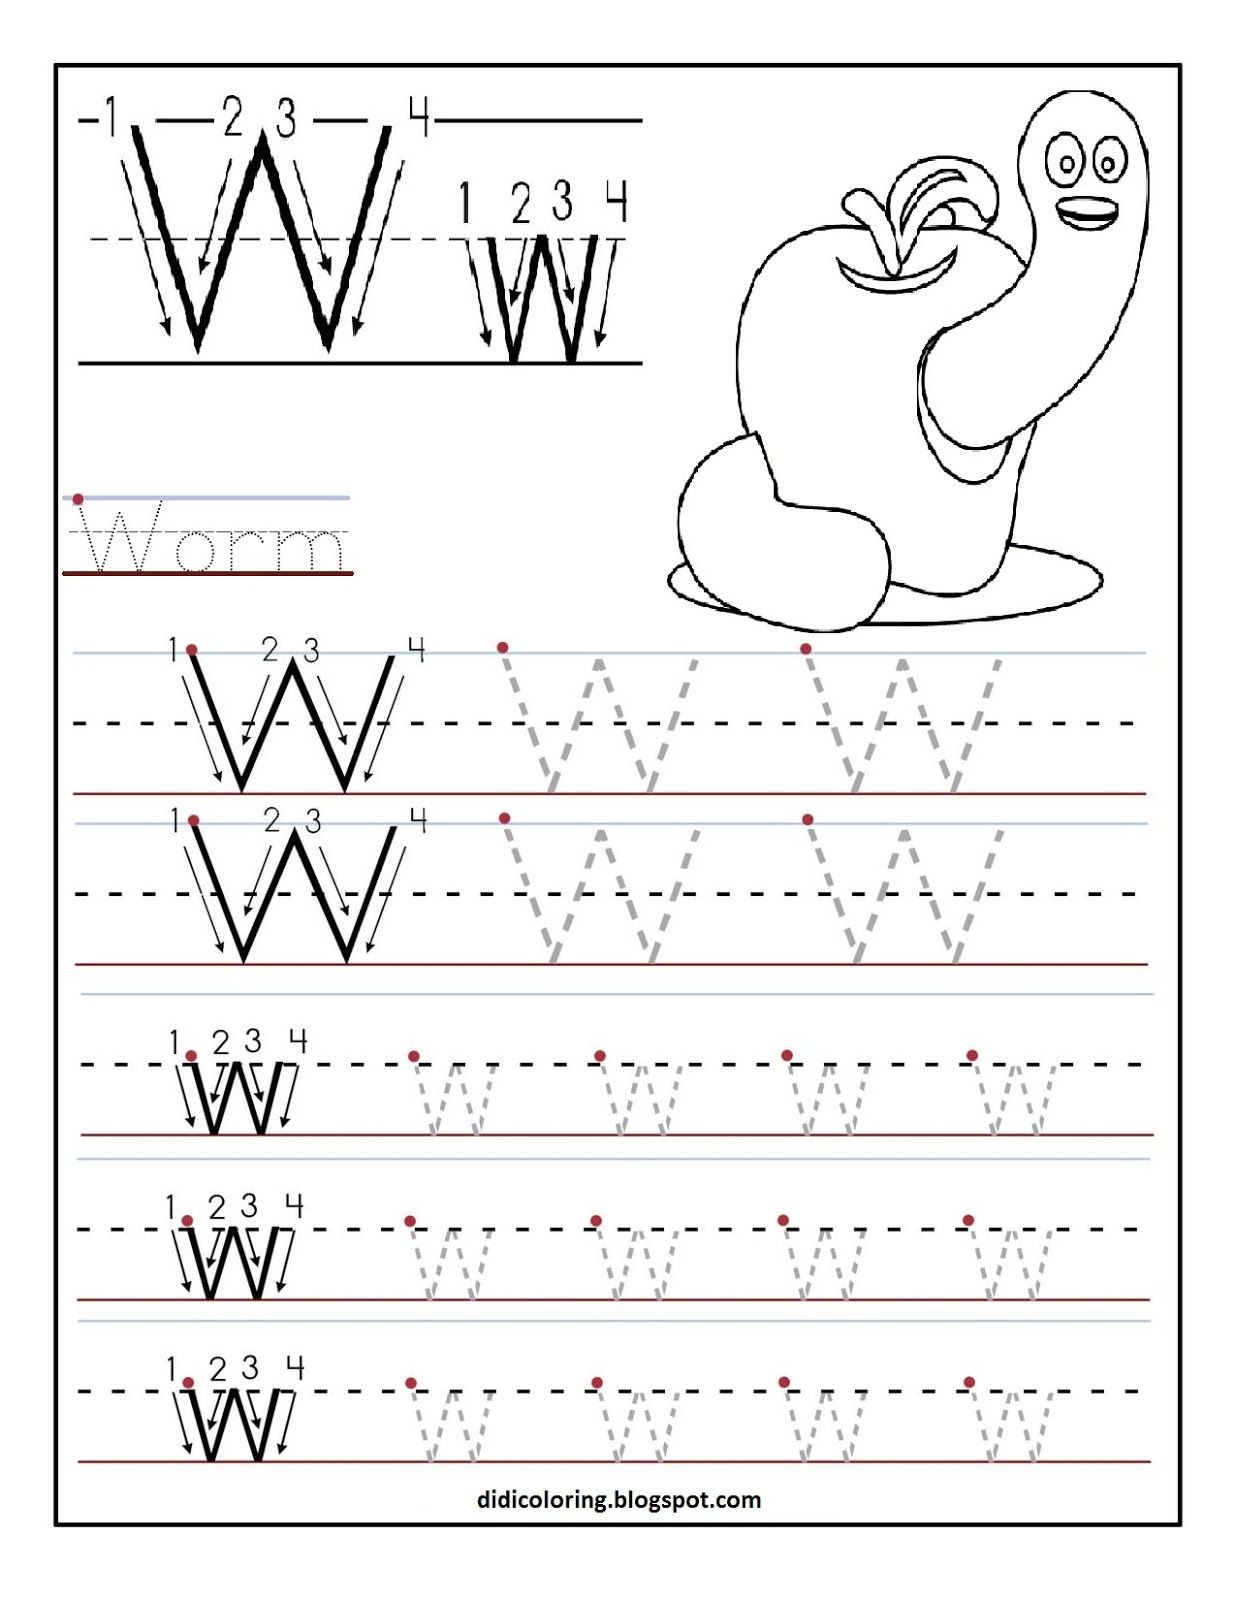 Free Printable Tracing Worksheet St For Your Kid To Learn And Write Enjoy Writing Letter W And